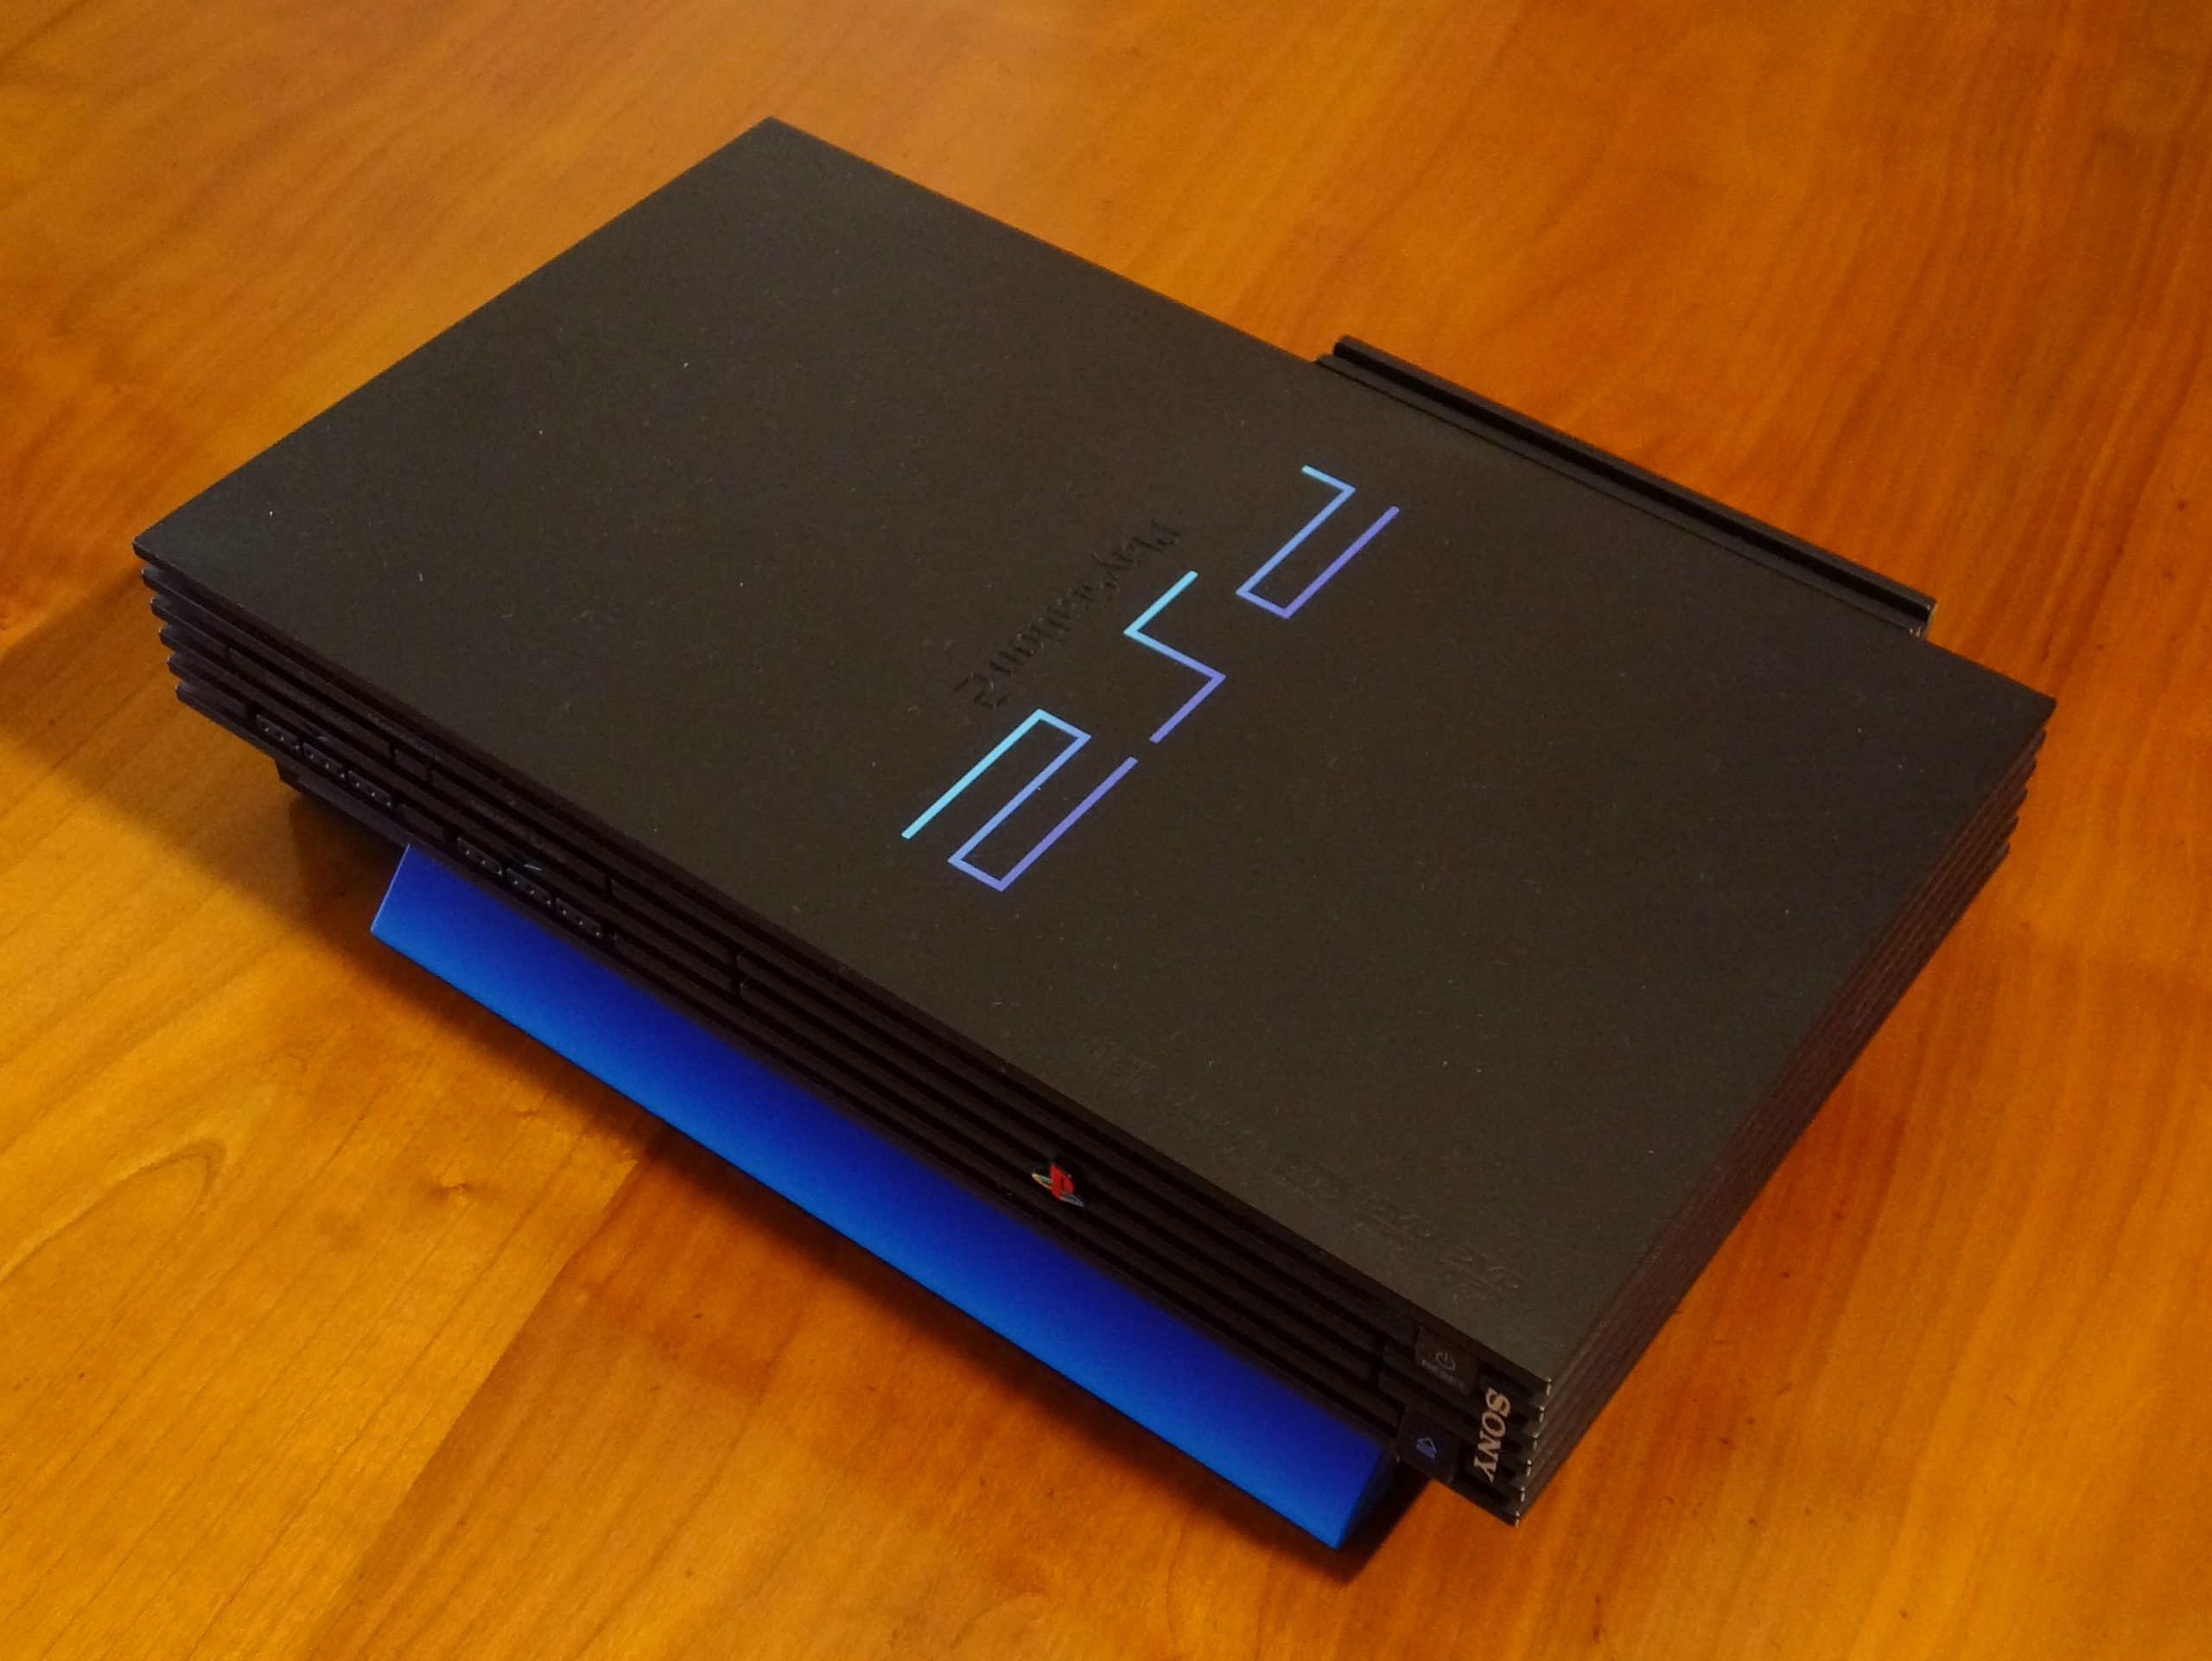 Console Playstation 2.